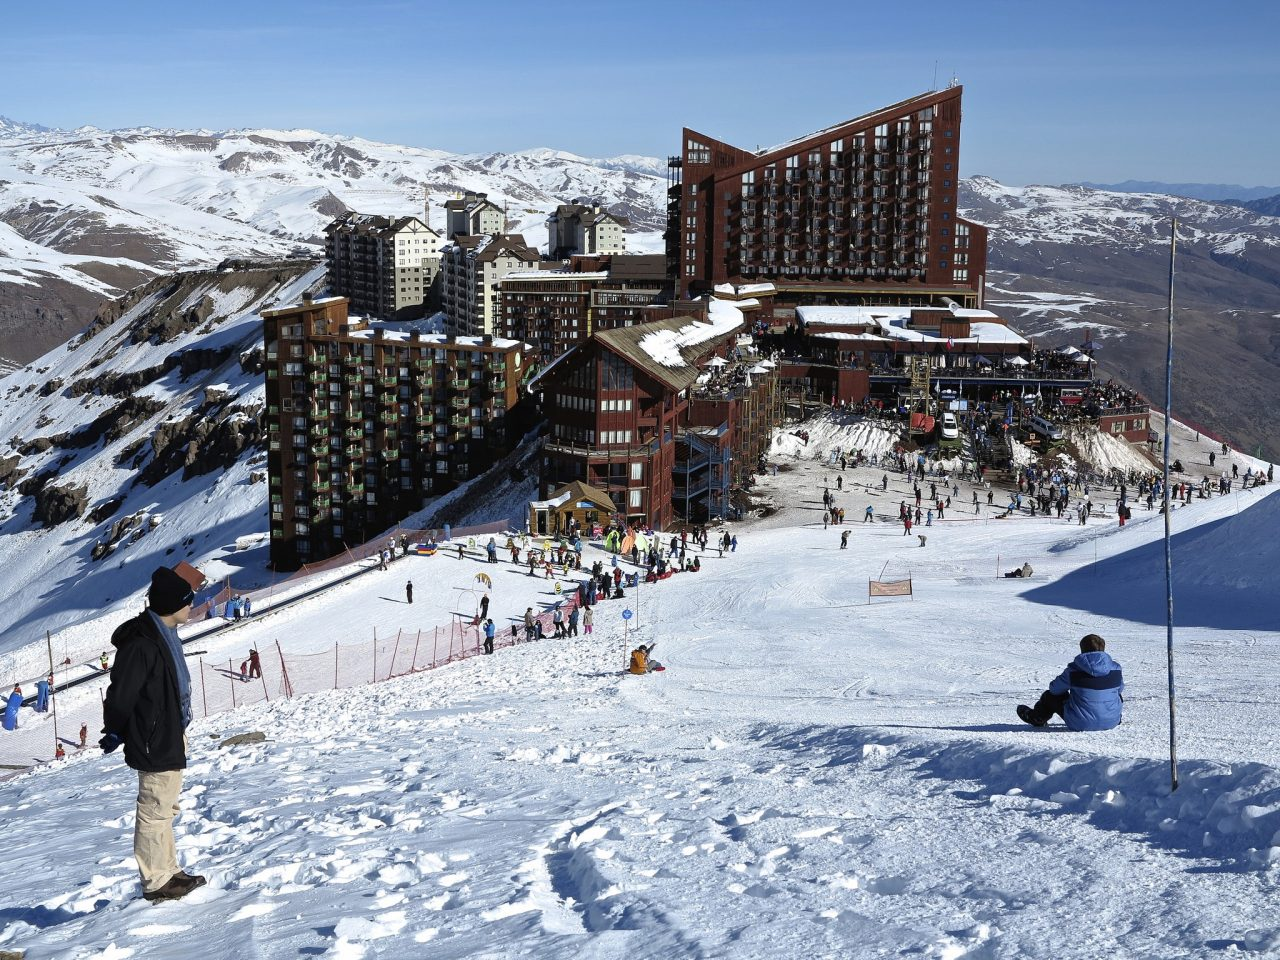 Vista do Valle Nevado - foto: Flickr - @armandolobos